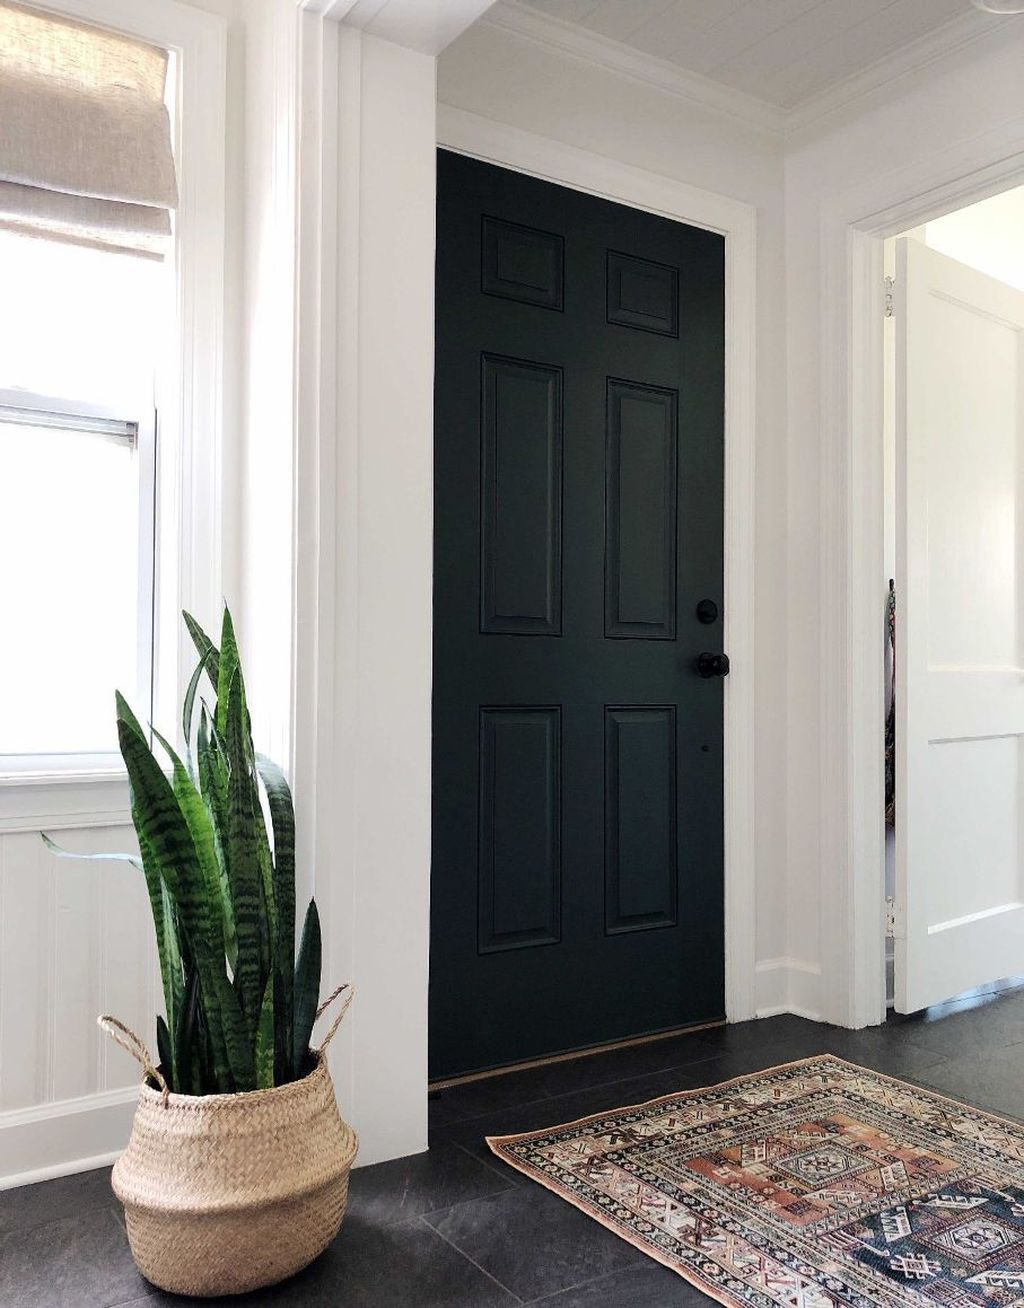 Splendid Entryway Home Décor Ideas That Make Your Place Look Cool 13